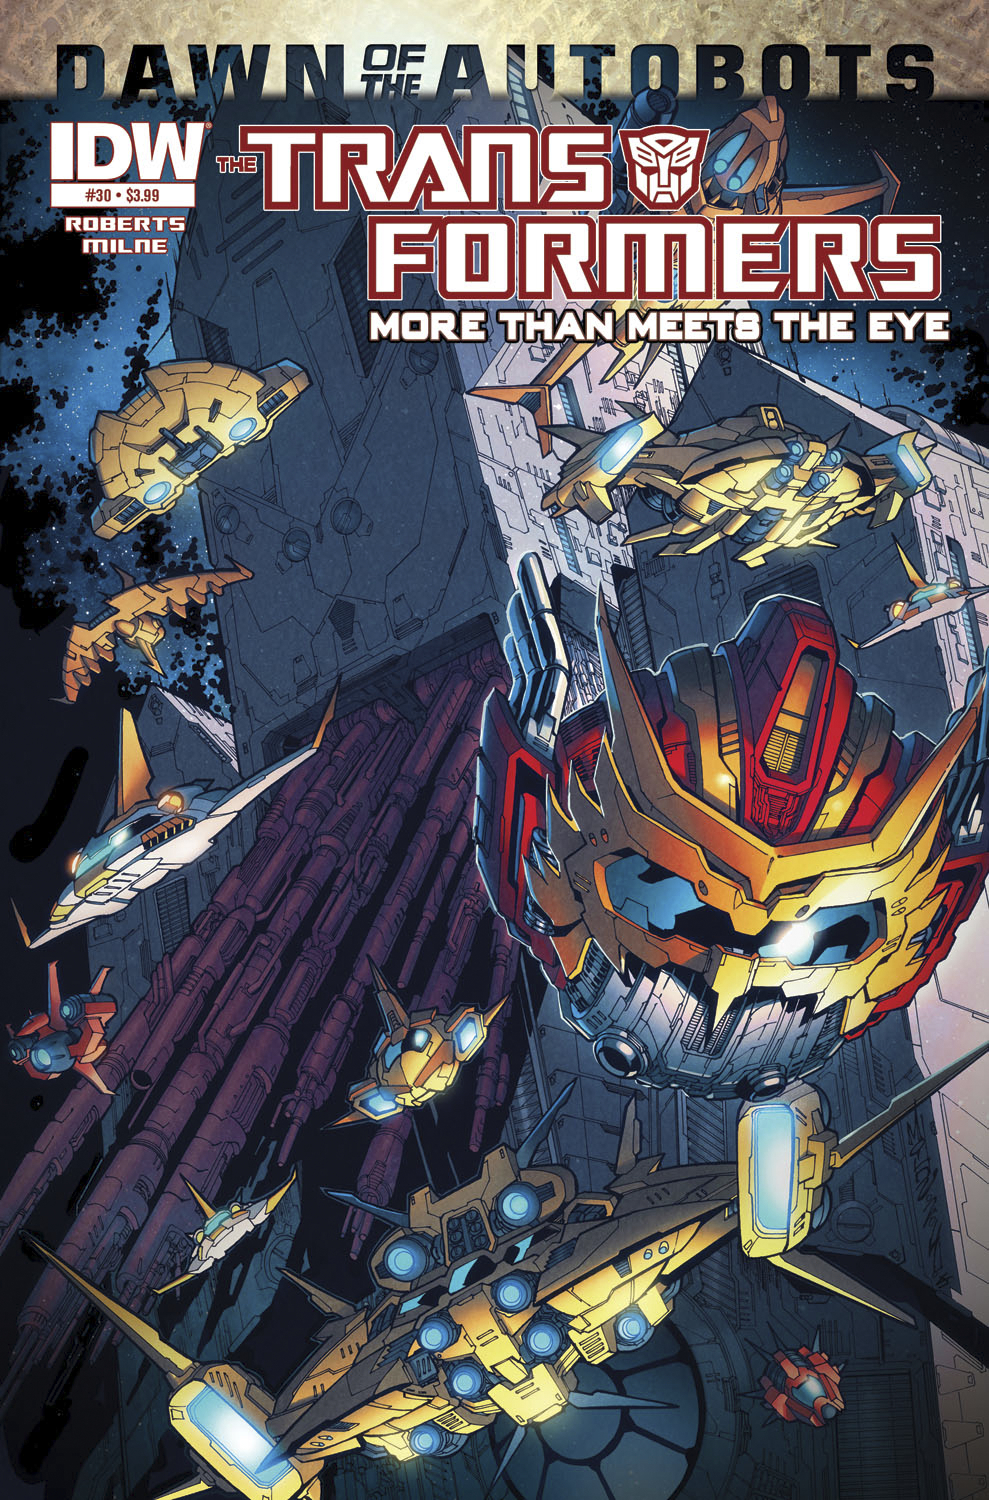 TRANSFORMERS MORE THAN MEETS EYE #30 DAWN O/T AUTOBOTS